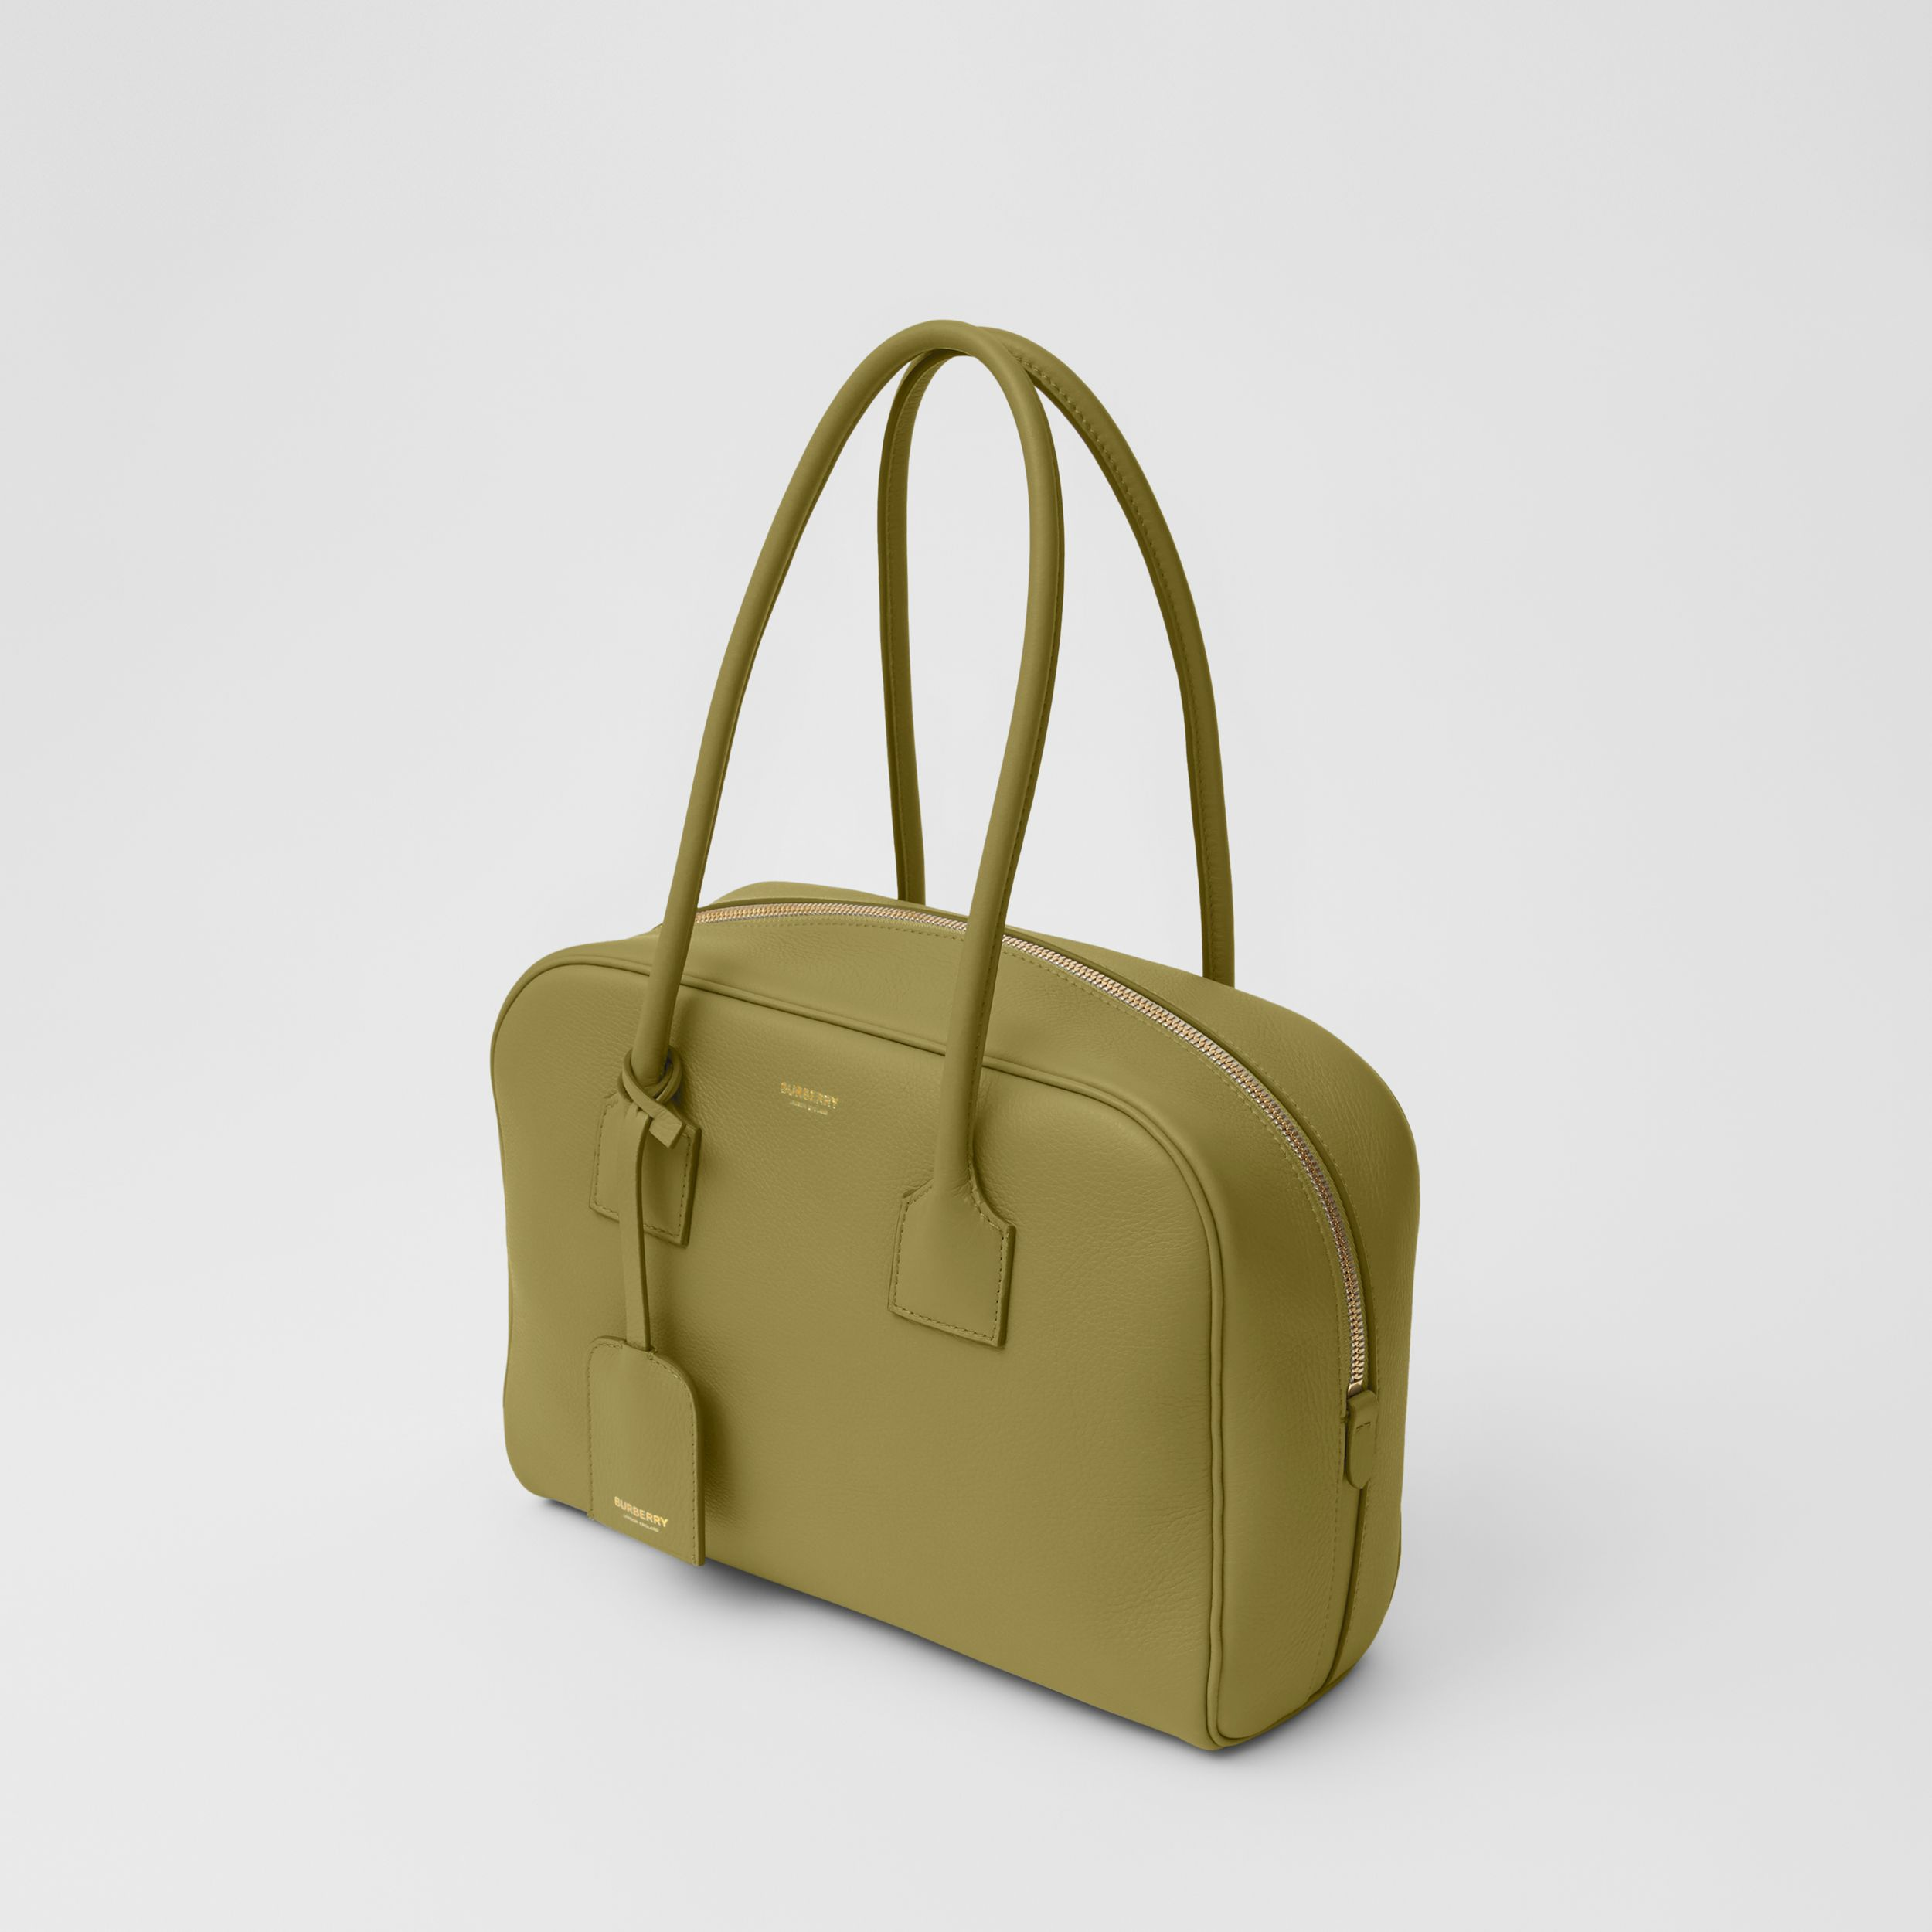 Medium Leather Half Cube Bag in Juniper Green - Women | Burberry - 4